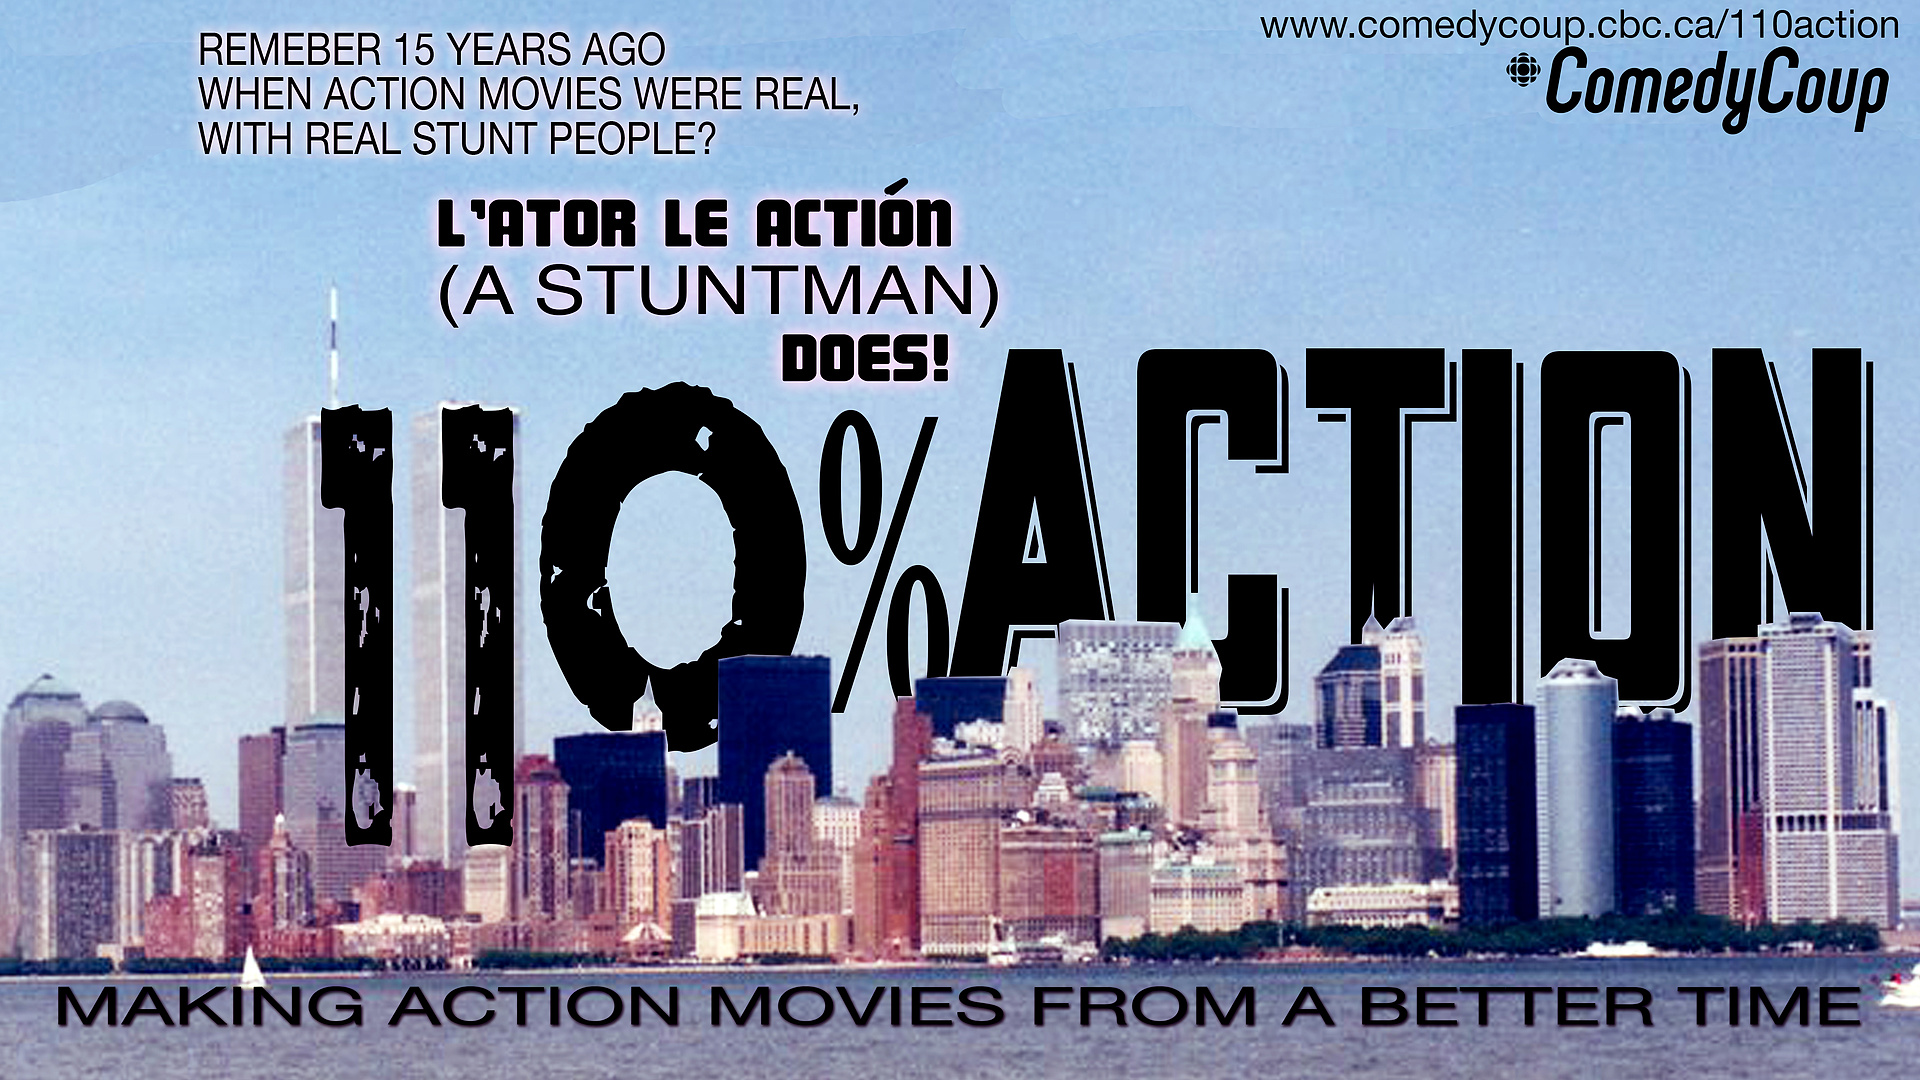 Week 4 Key It: Poster A 110% Action